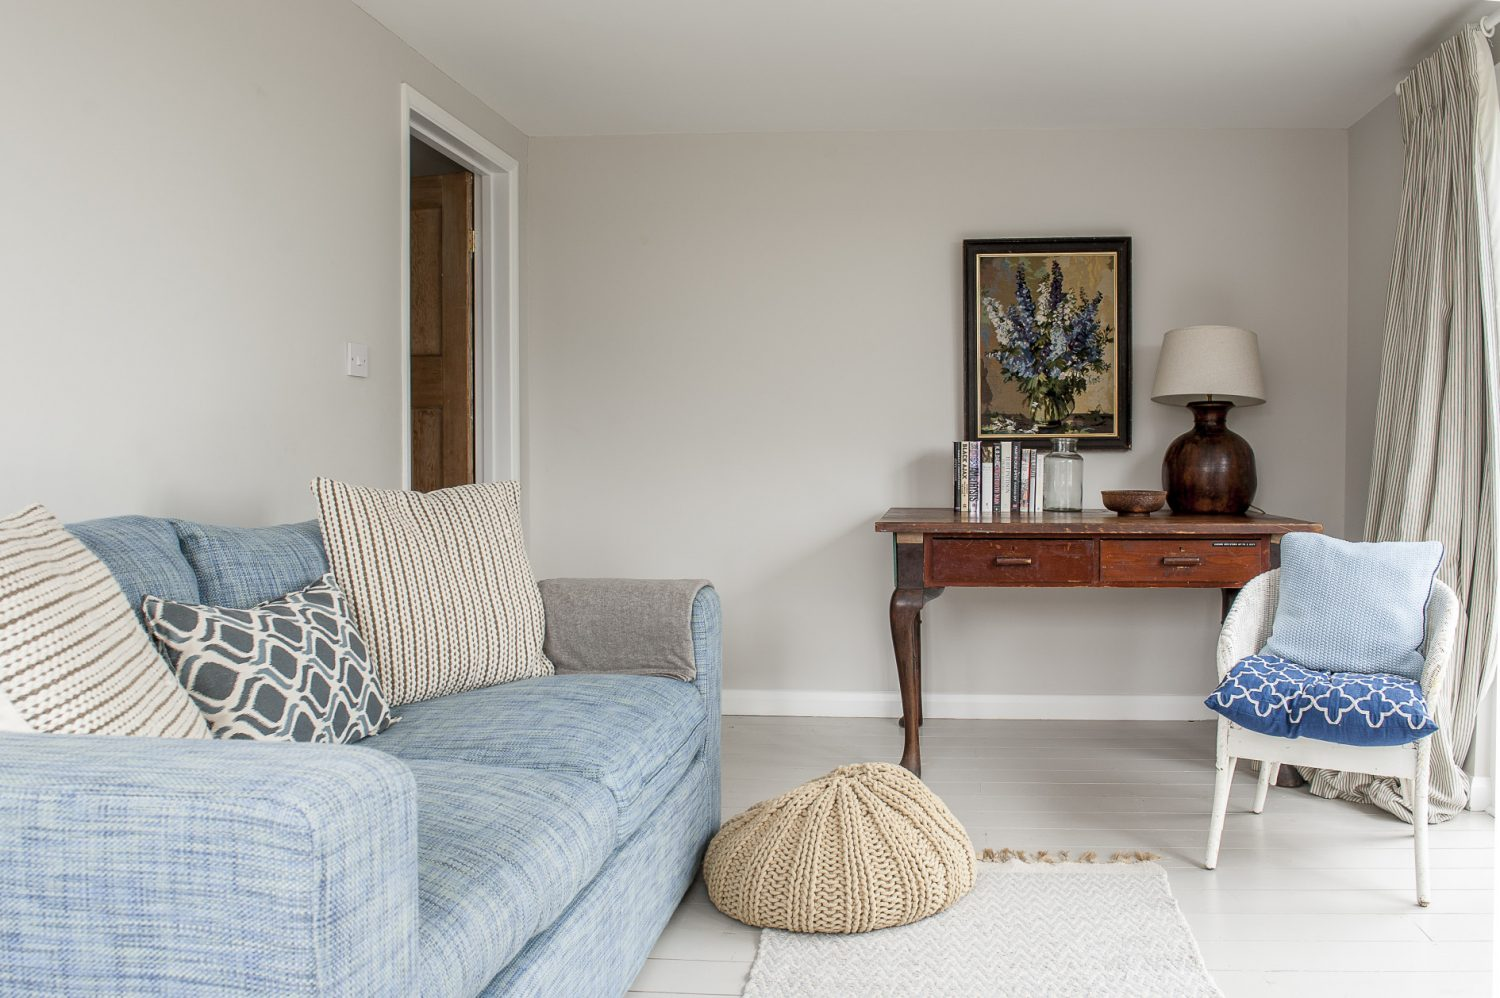 The sofa in the games room is from sofa.com while its cushions and those on the Lloyd Loom chair are covered in fabric by Merchant and Mills. The high desk, used as a side table, is from McCully & Crane